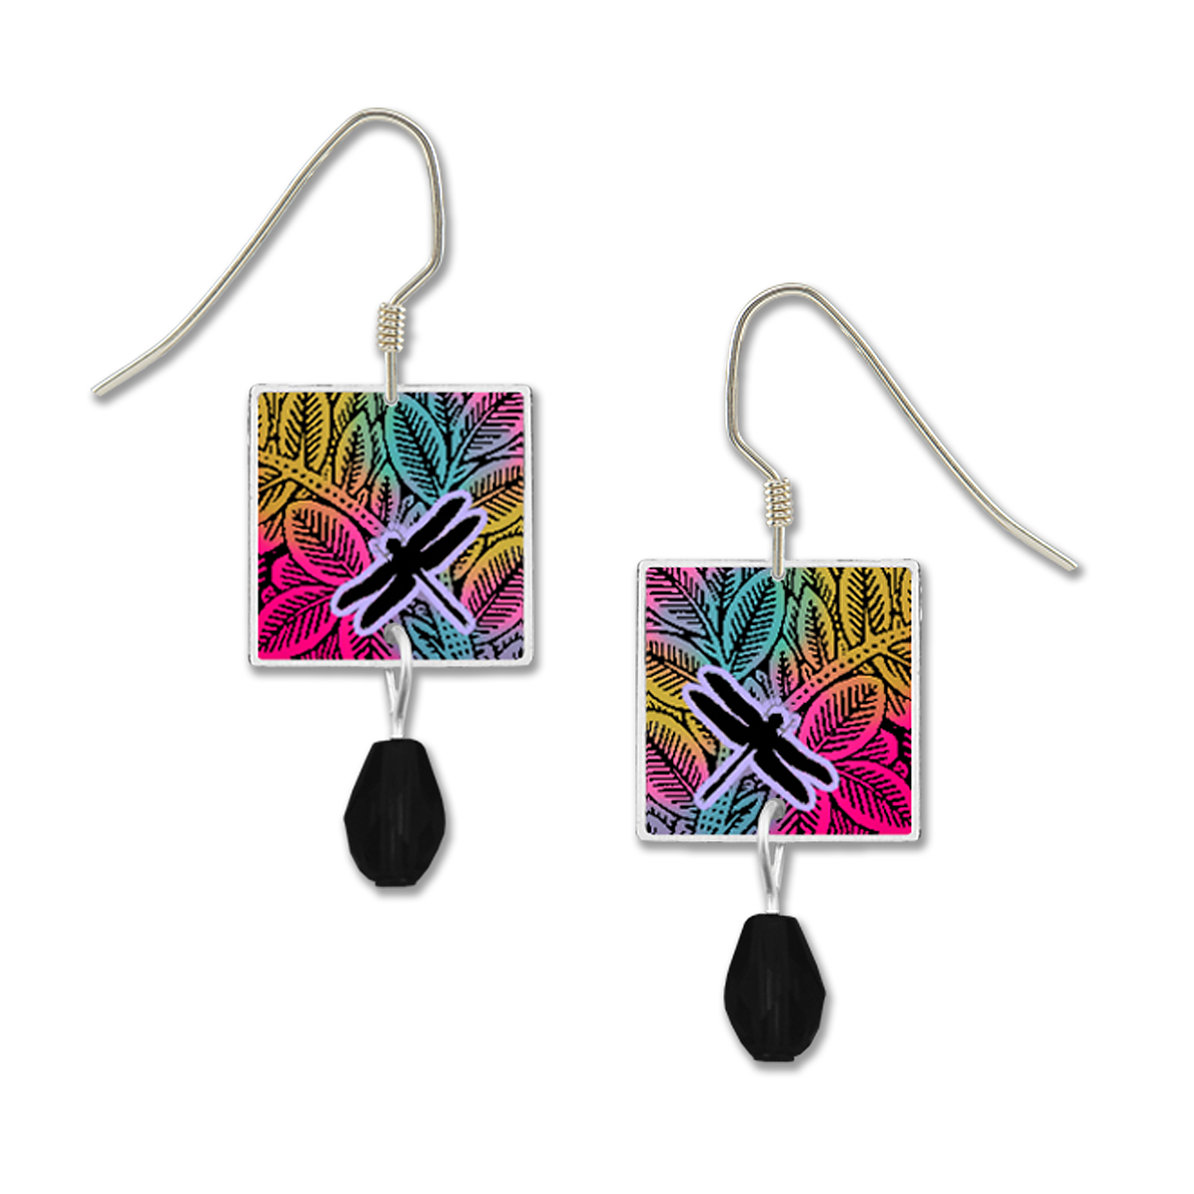 Colorful Dragonfly earrings